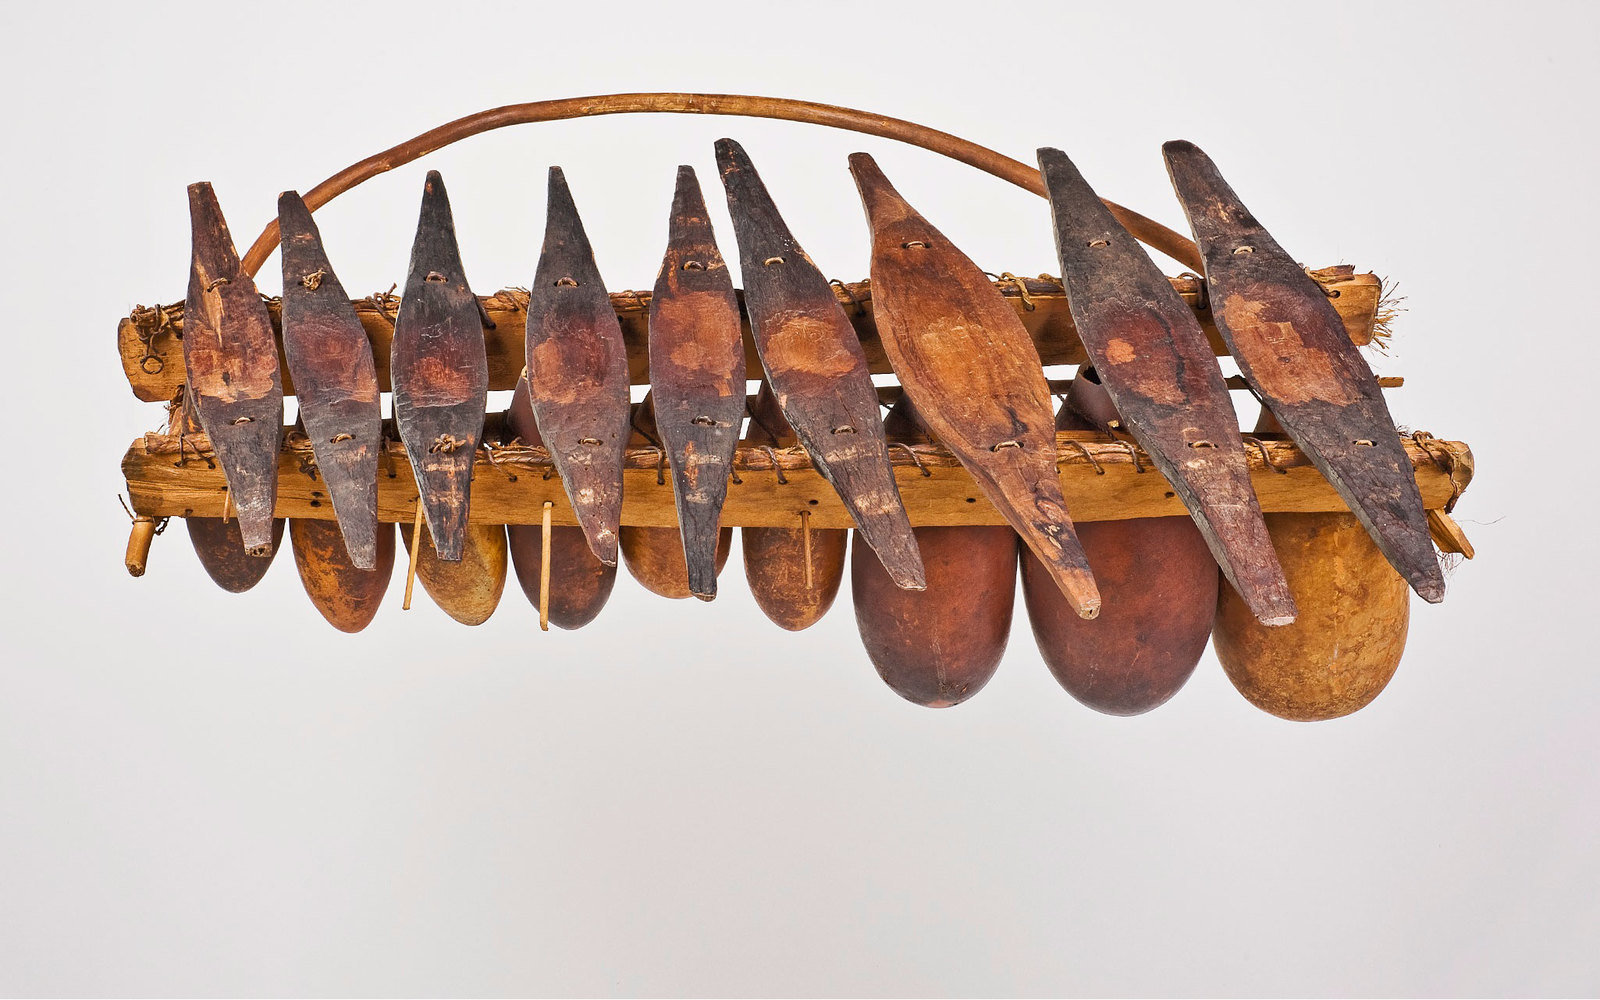 Xylophone Kidimba, Anonymous Luba maker, Royal Museum for Central Africa, Tervuren/ Jo Van de Vyver, CC BY-NC-SA